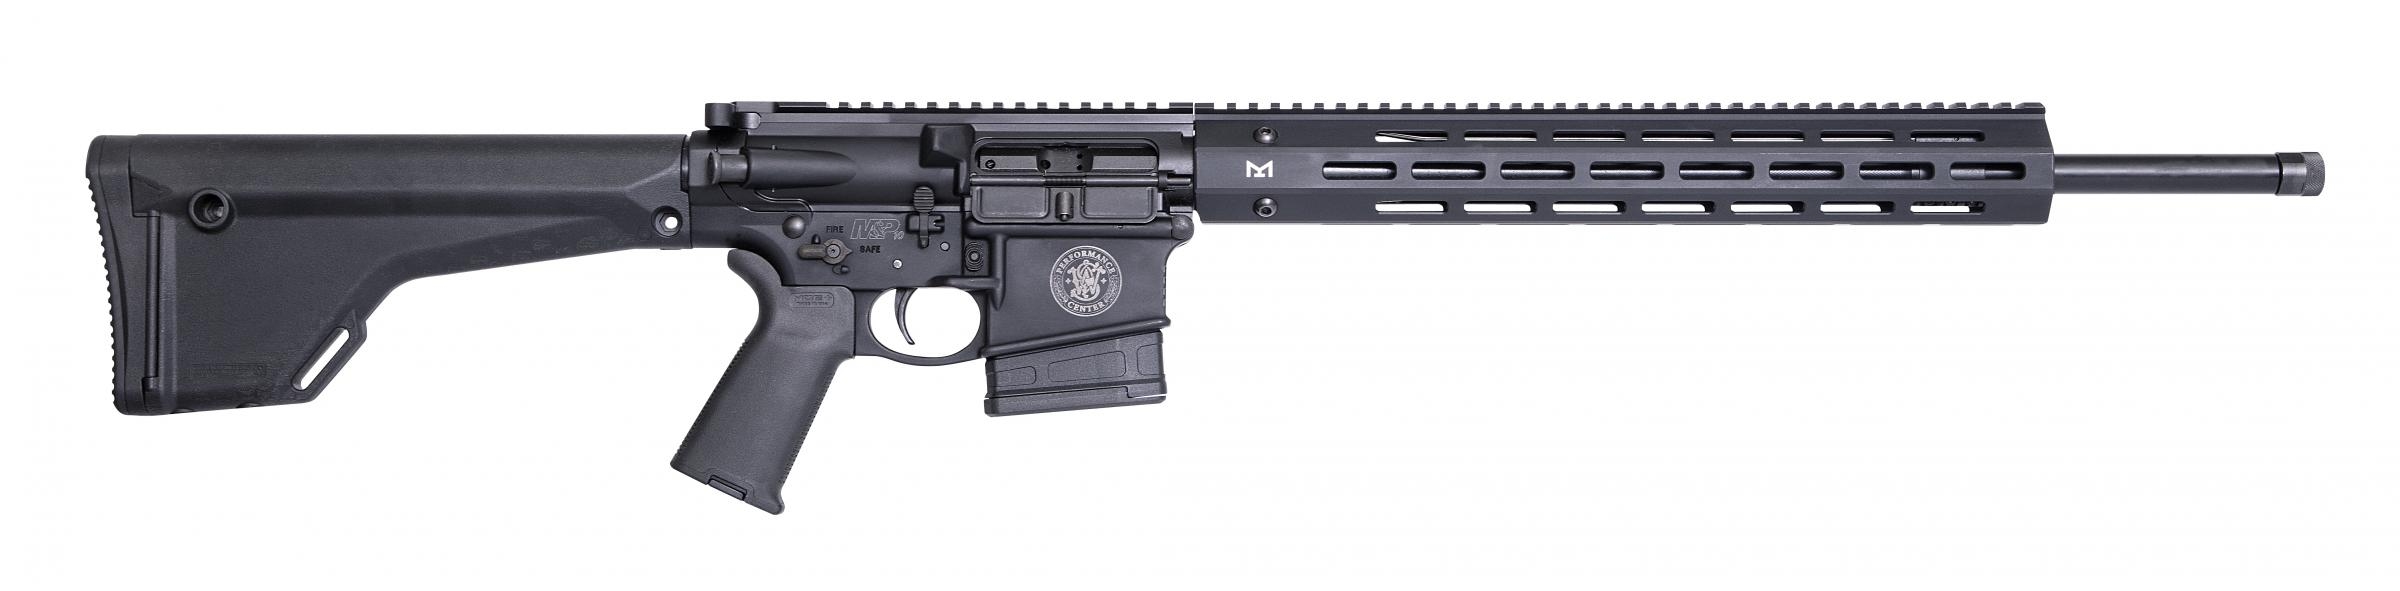 Smith and Wesson M&P-10 Performance Center 6.5 Creedmoor